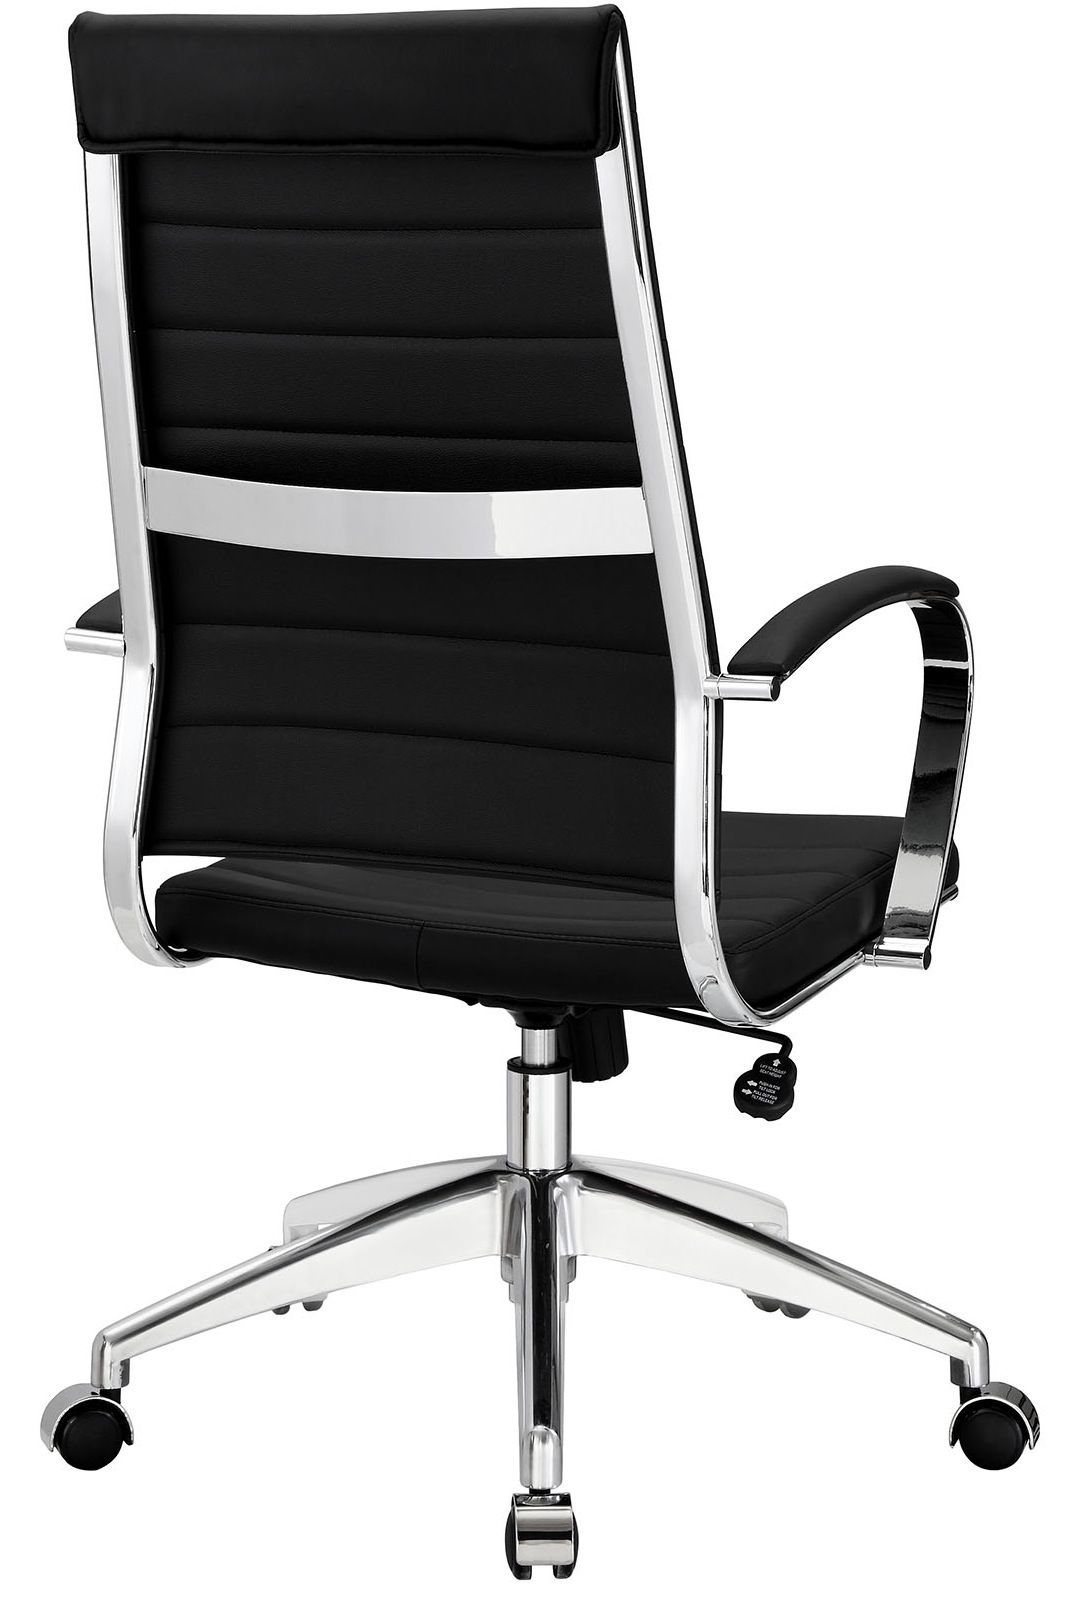 Chair Back Aria Leather High Back Office Chair Many Colors